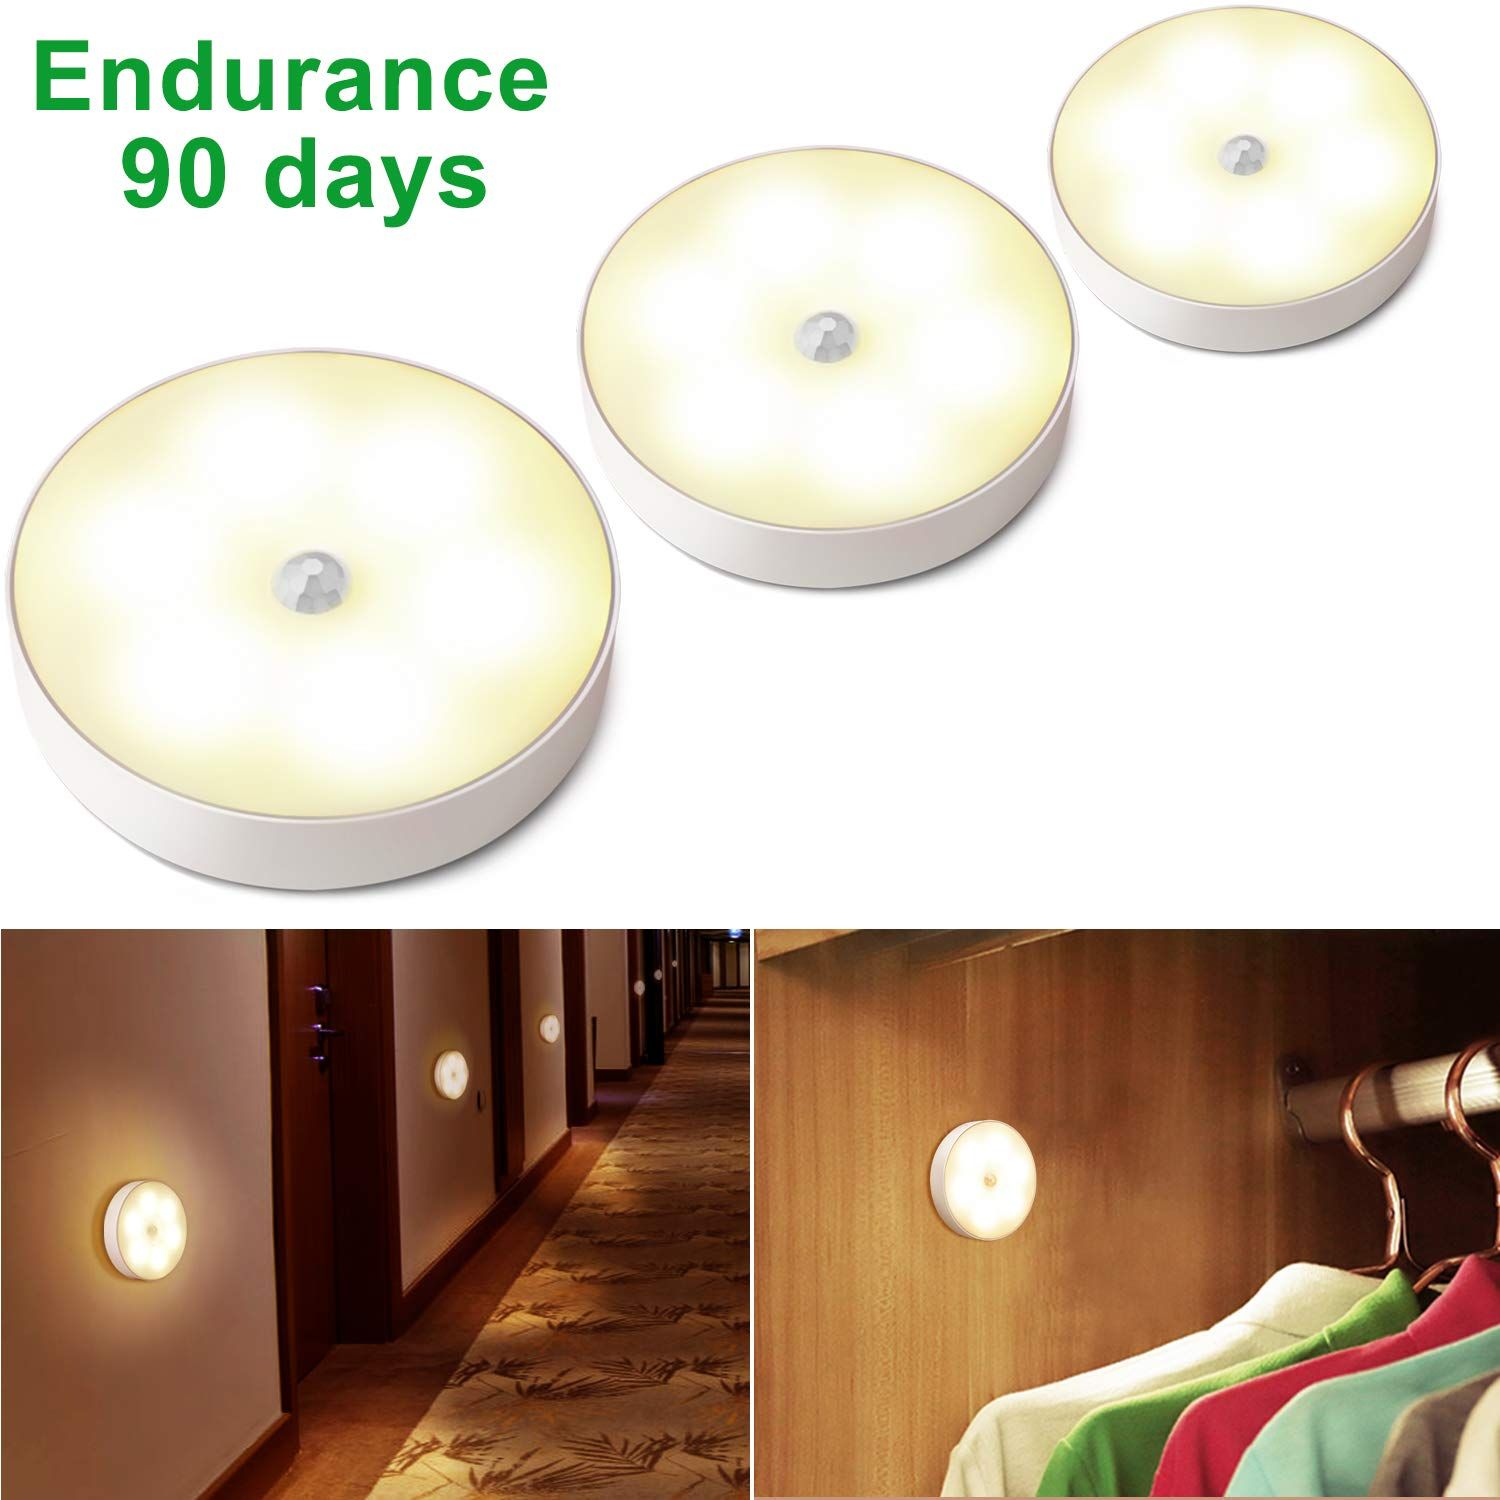 Motion Sensor Light Battery Operated Led Puck Lights Rechargeable Closet Light Cordless Wall Light Under Cabinet Lighting Stairs Lights Hallway Bathroom Kitc Trong 2020